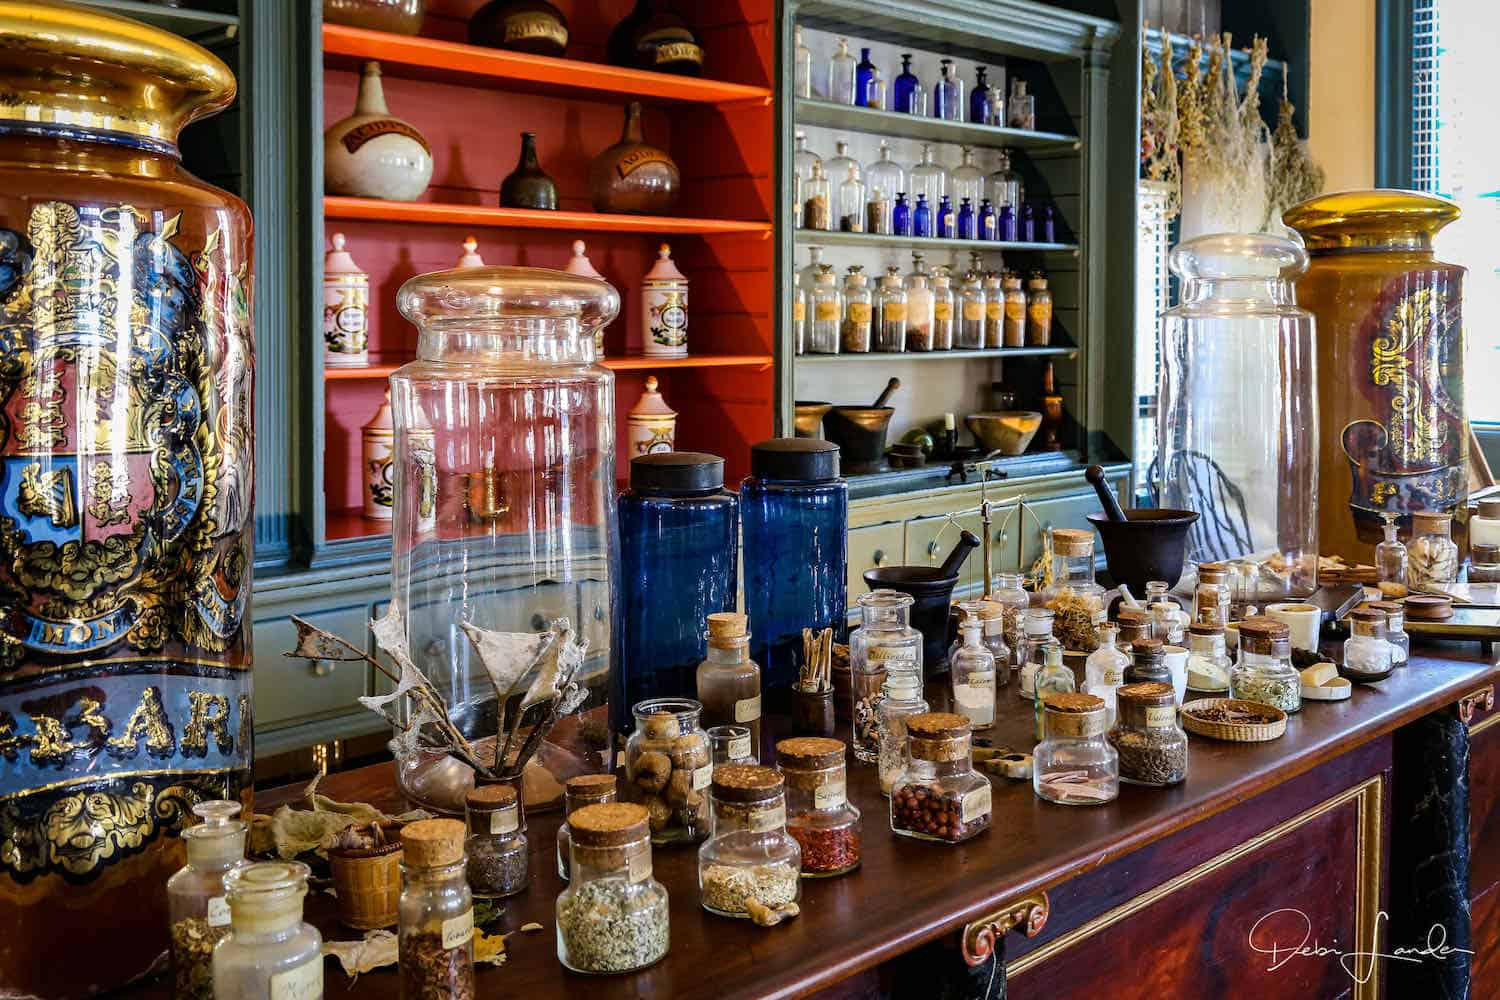 Colorful bottles on shelves behind a counter holding jars of treatments at a colonial American apothecary shop.